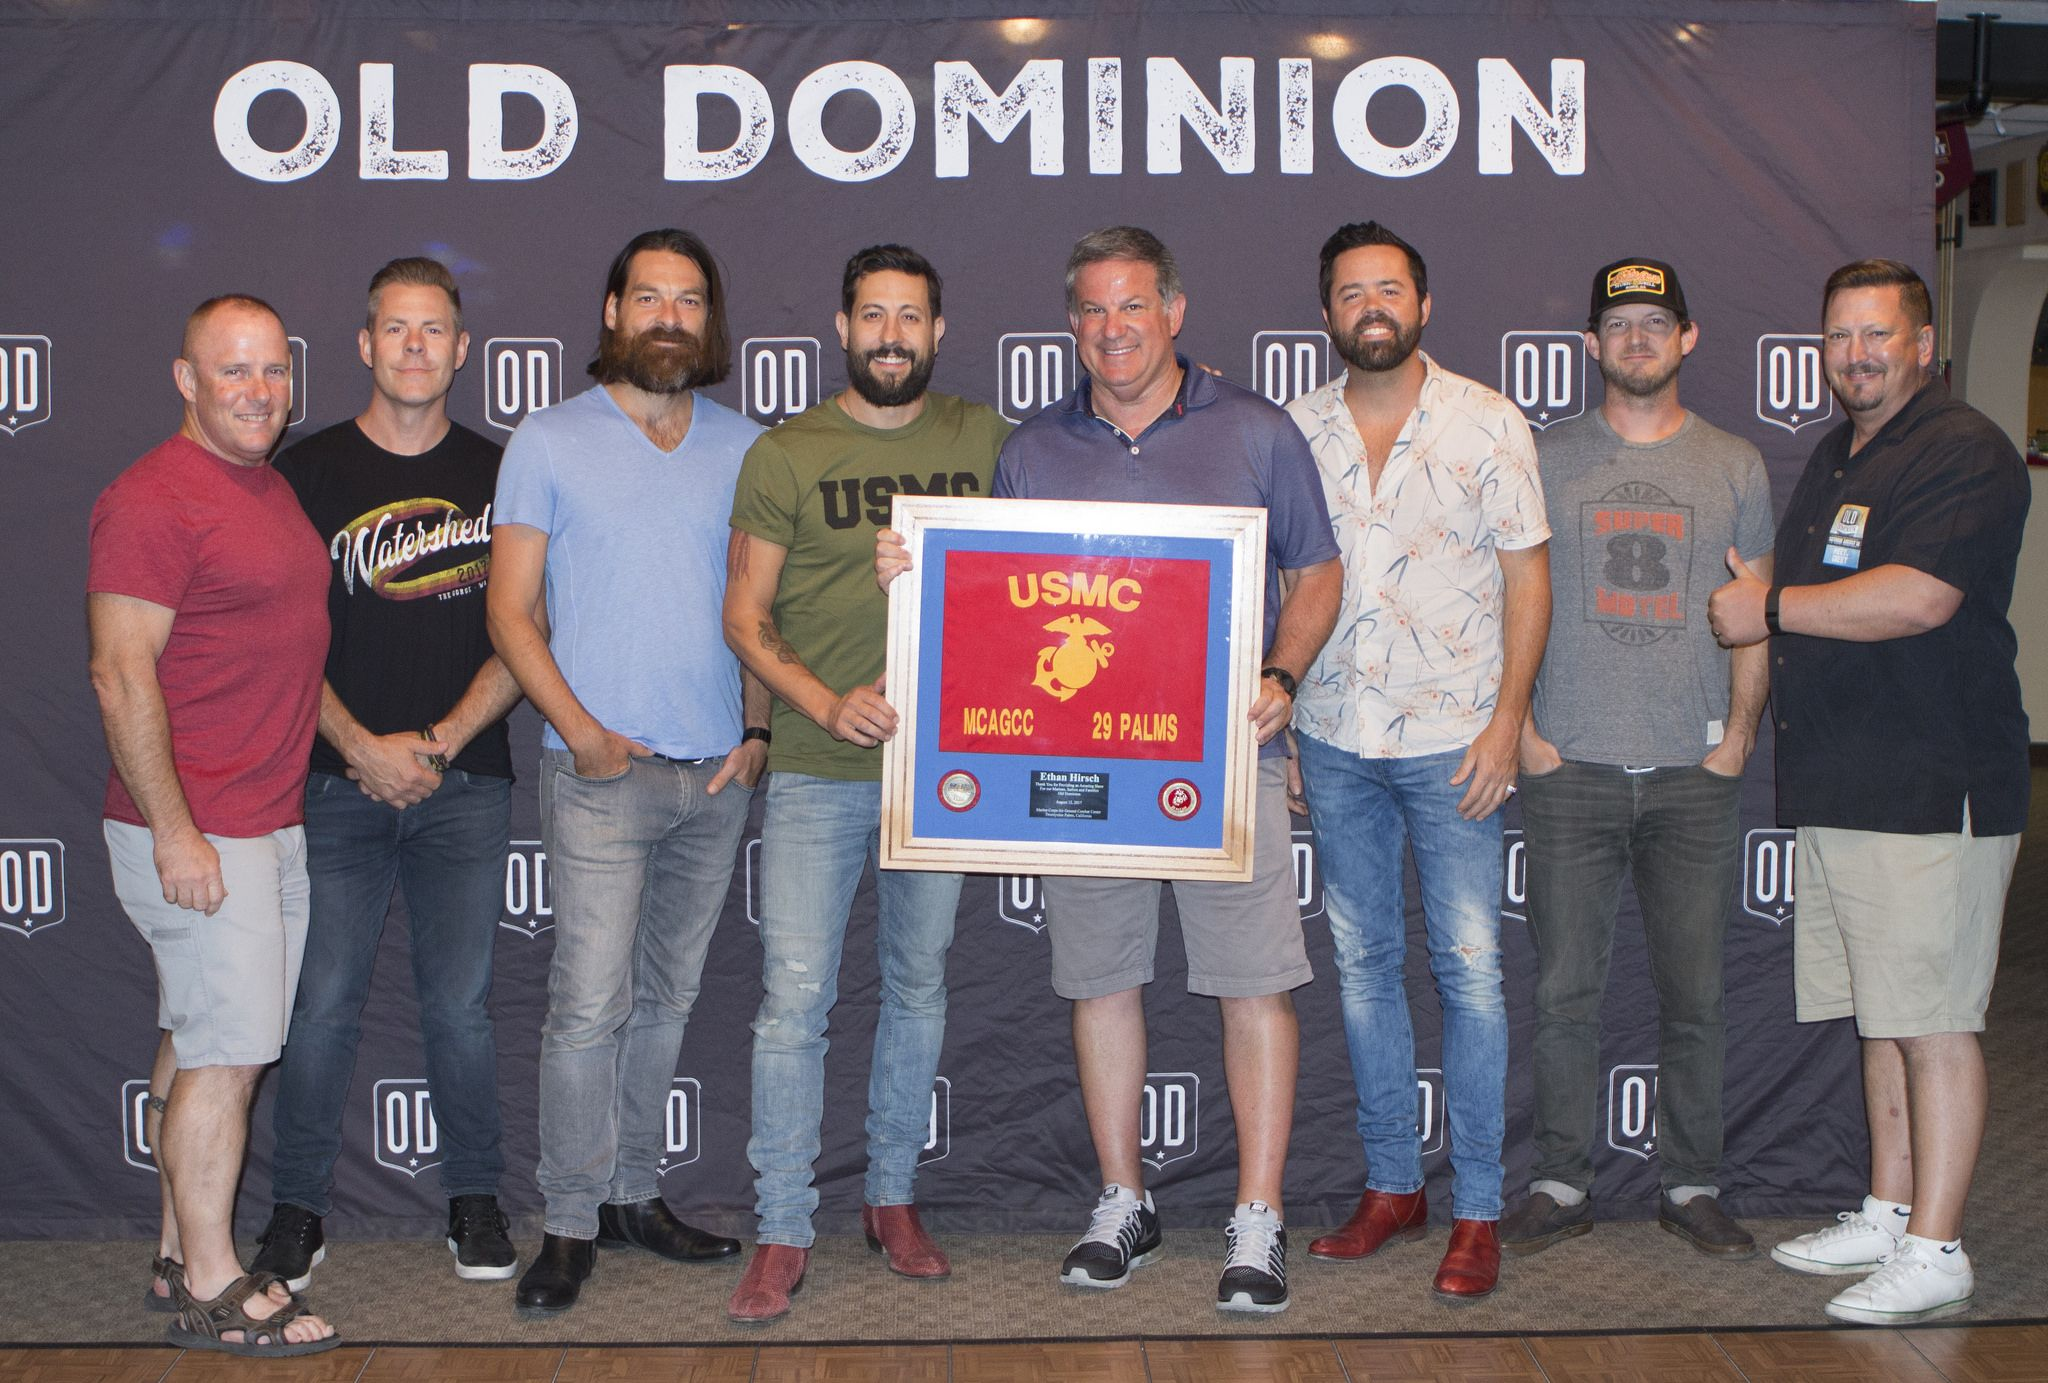 Old dominion meet and greet 2017 august 12 httpsflicsahsm2jae9f old dominion meet and kristyandbryce Choice Image